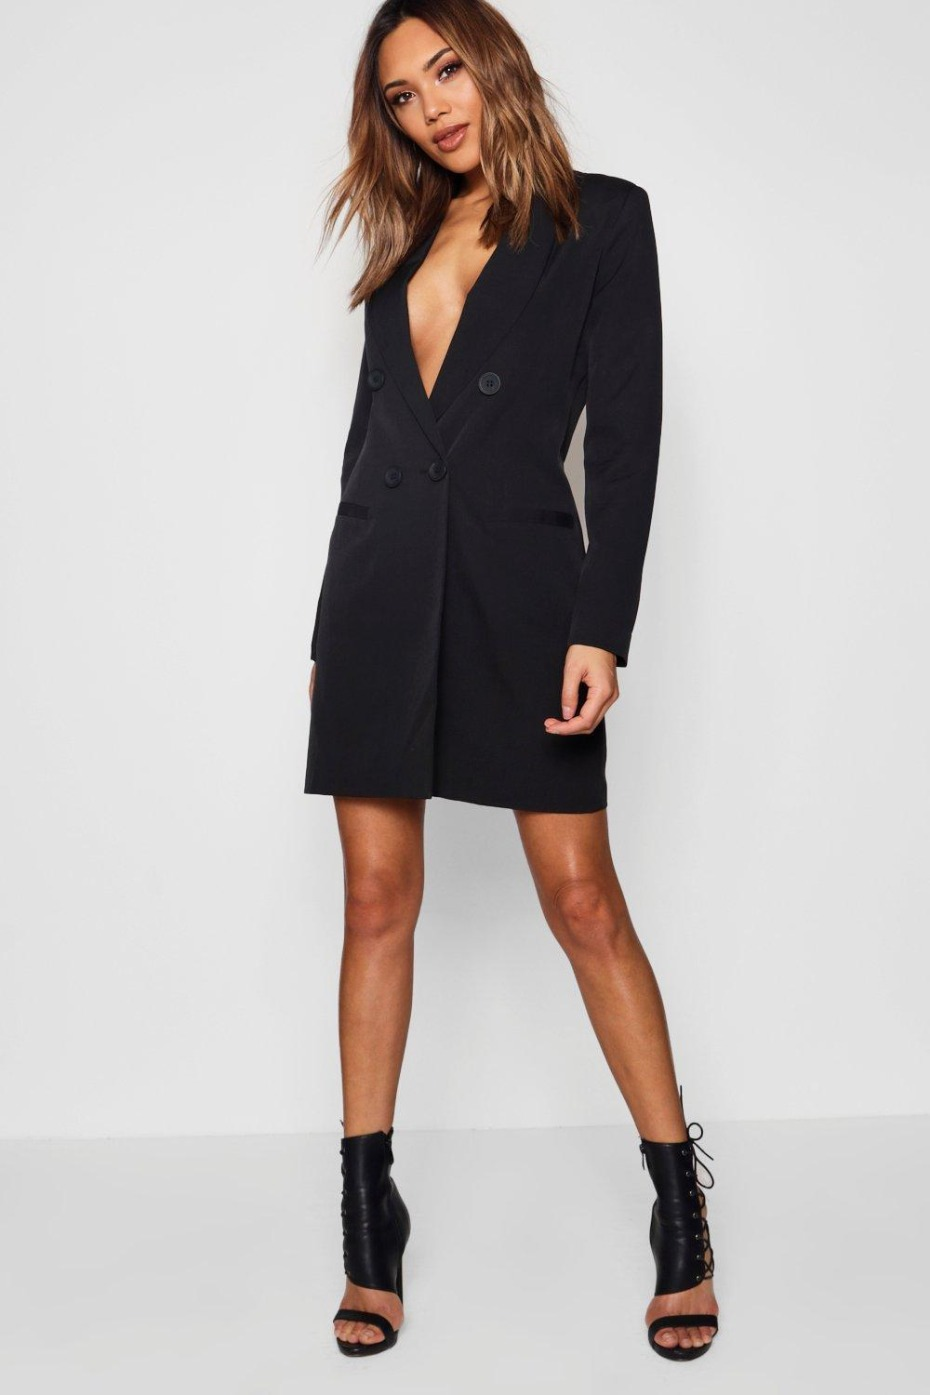 Boohoo Double Breasted Blazer Dress